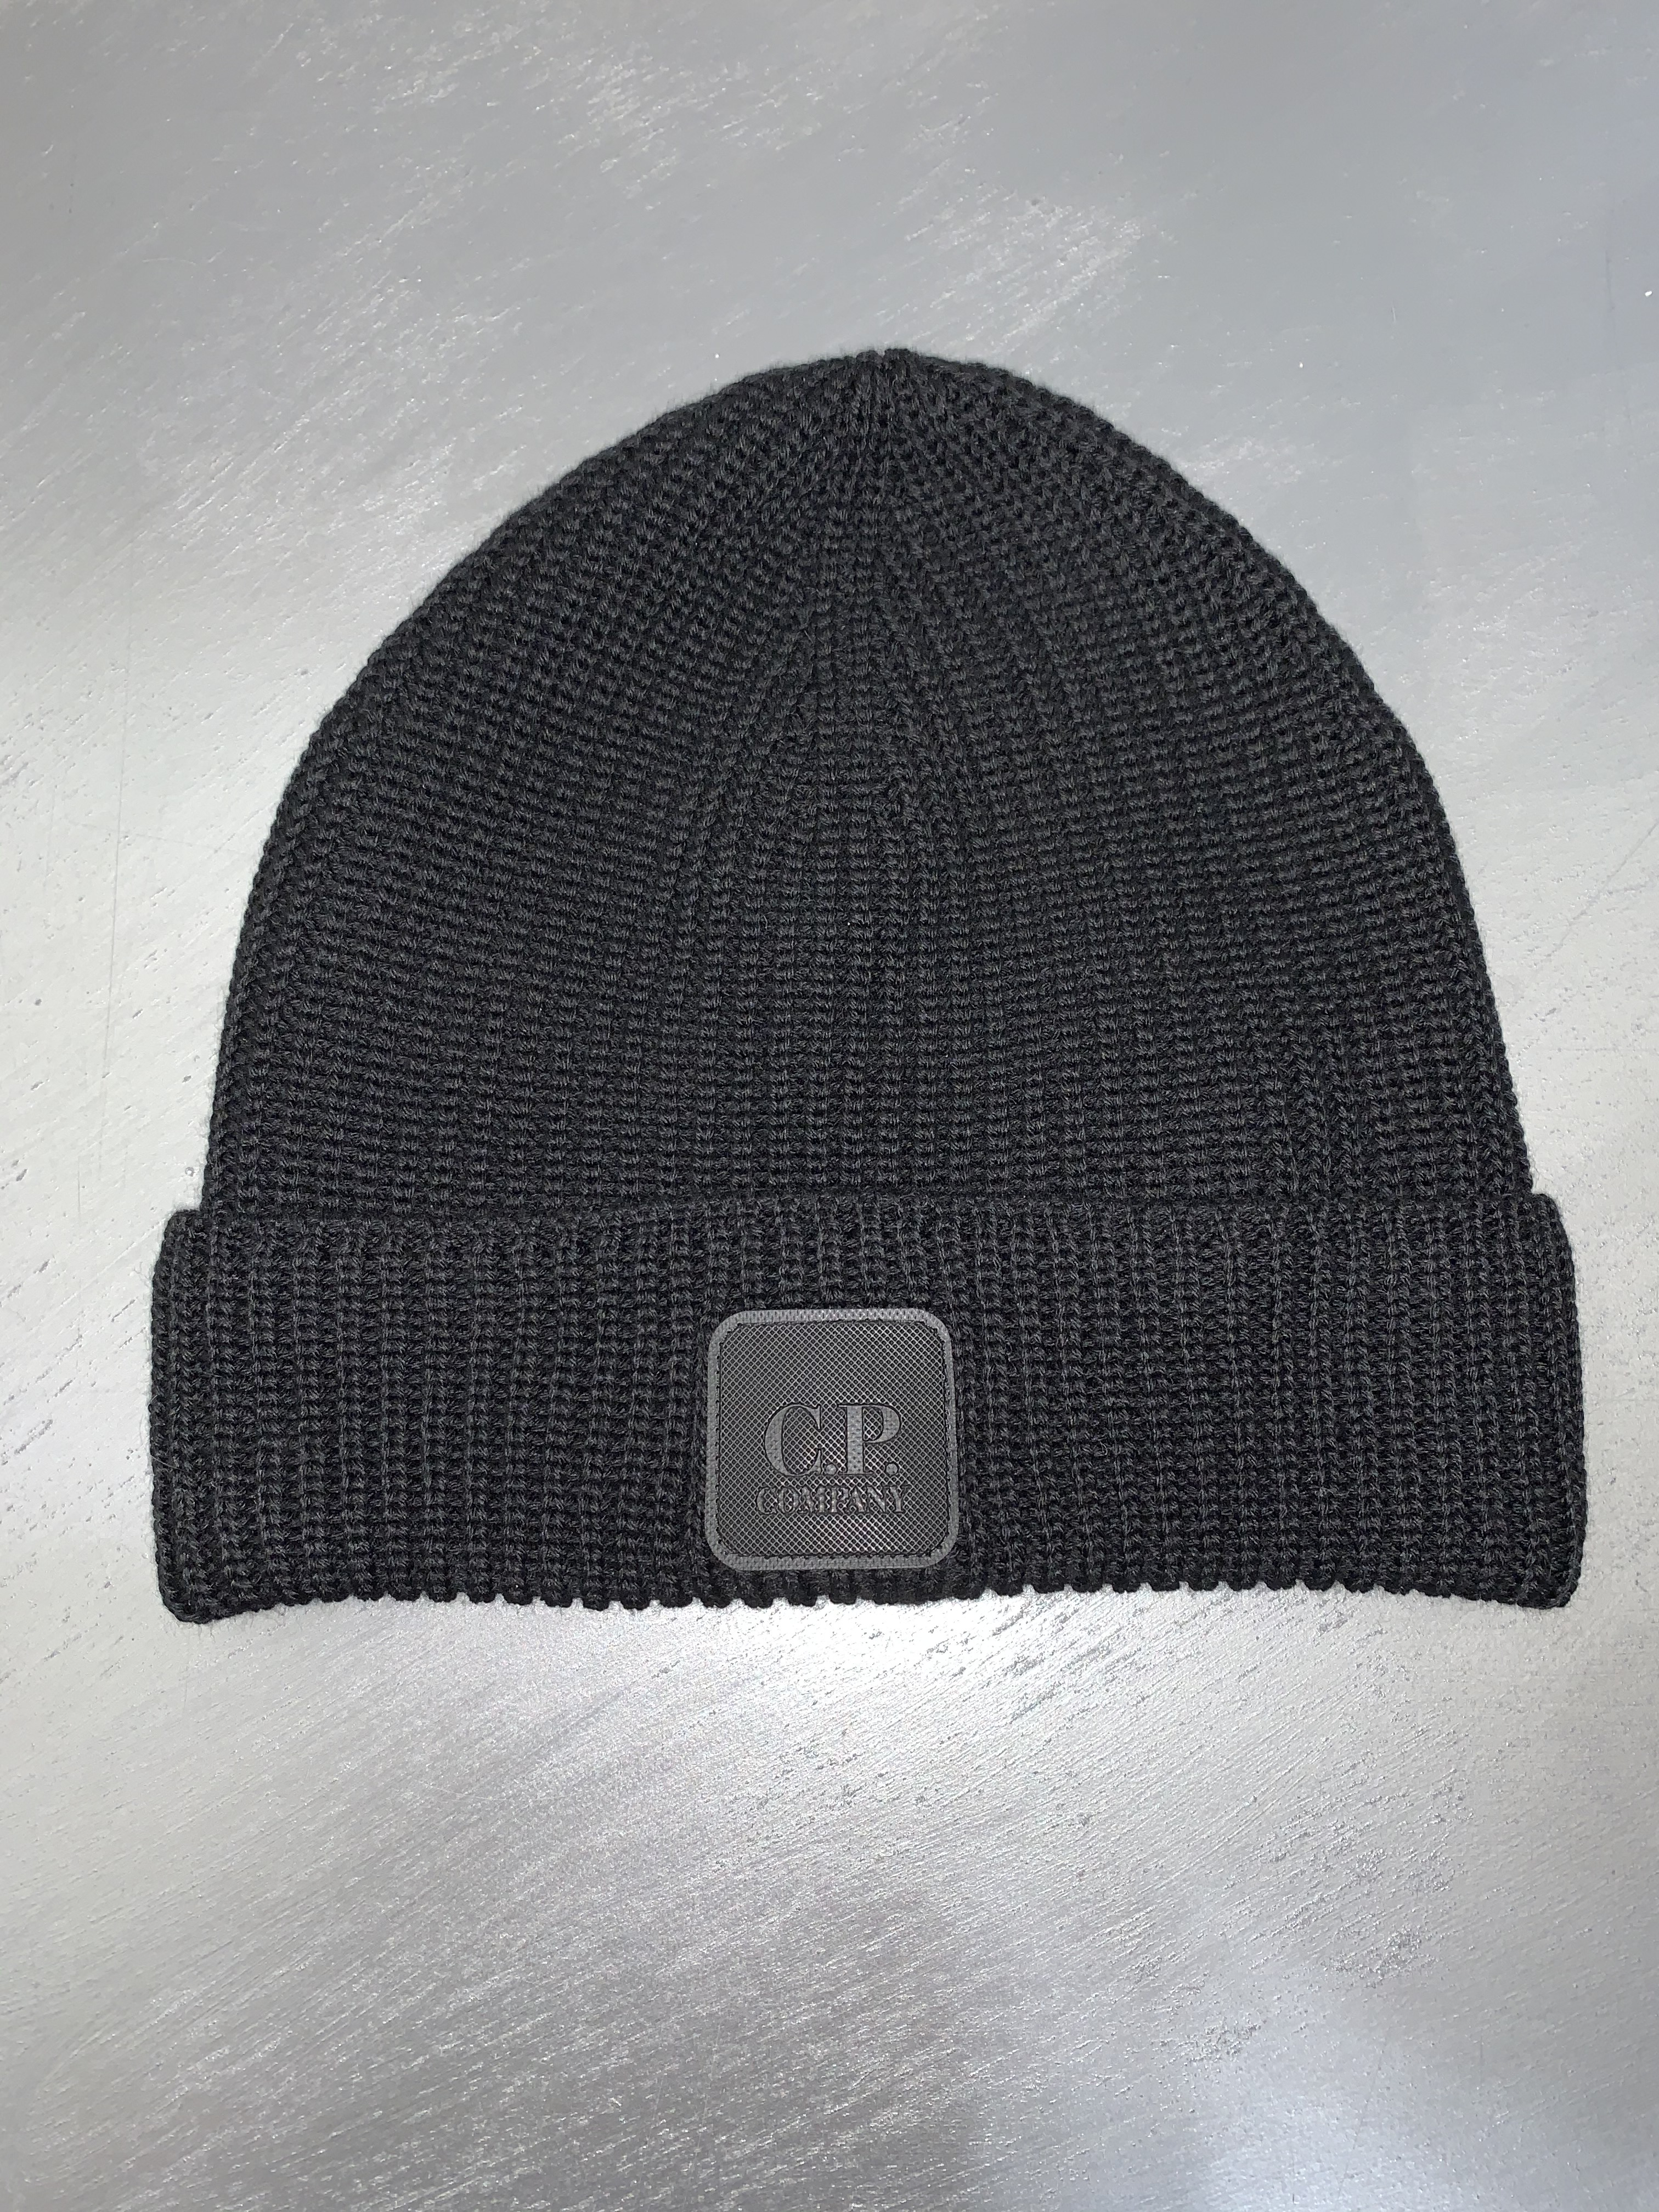 SHOPPING ON LINE CP COMPANY BERRETTO MERINO WOOL LOGO BADGE BEANIE NEW COLLECTION MEN FALL WINTER 2020/2021